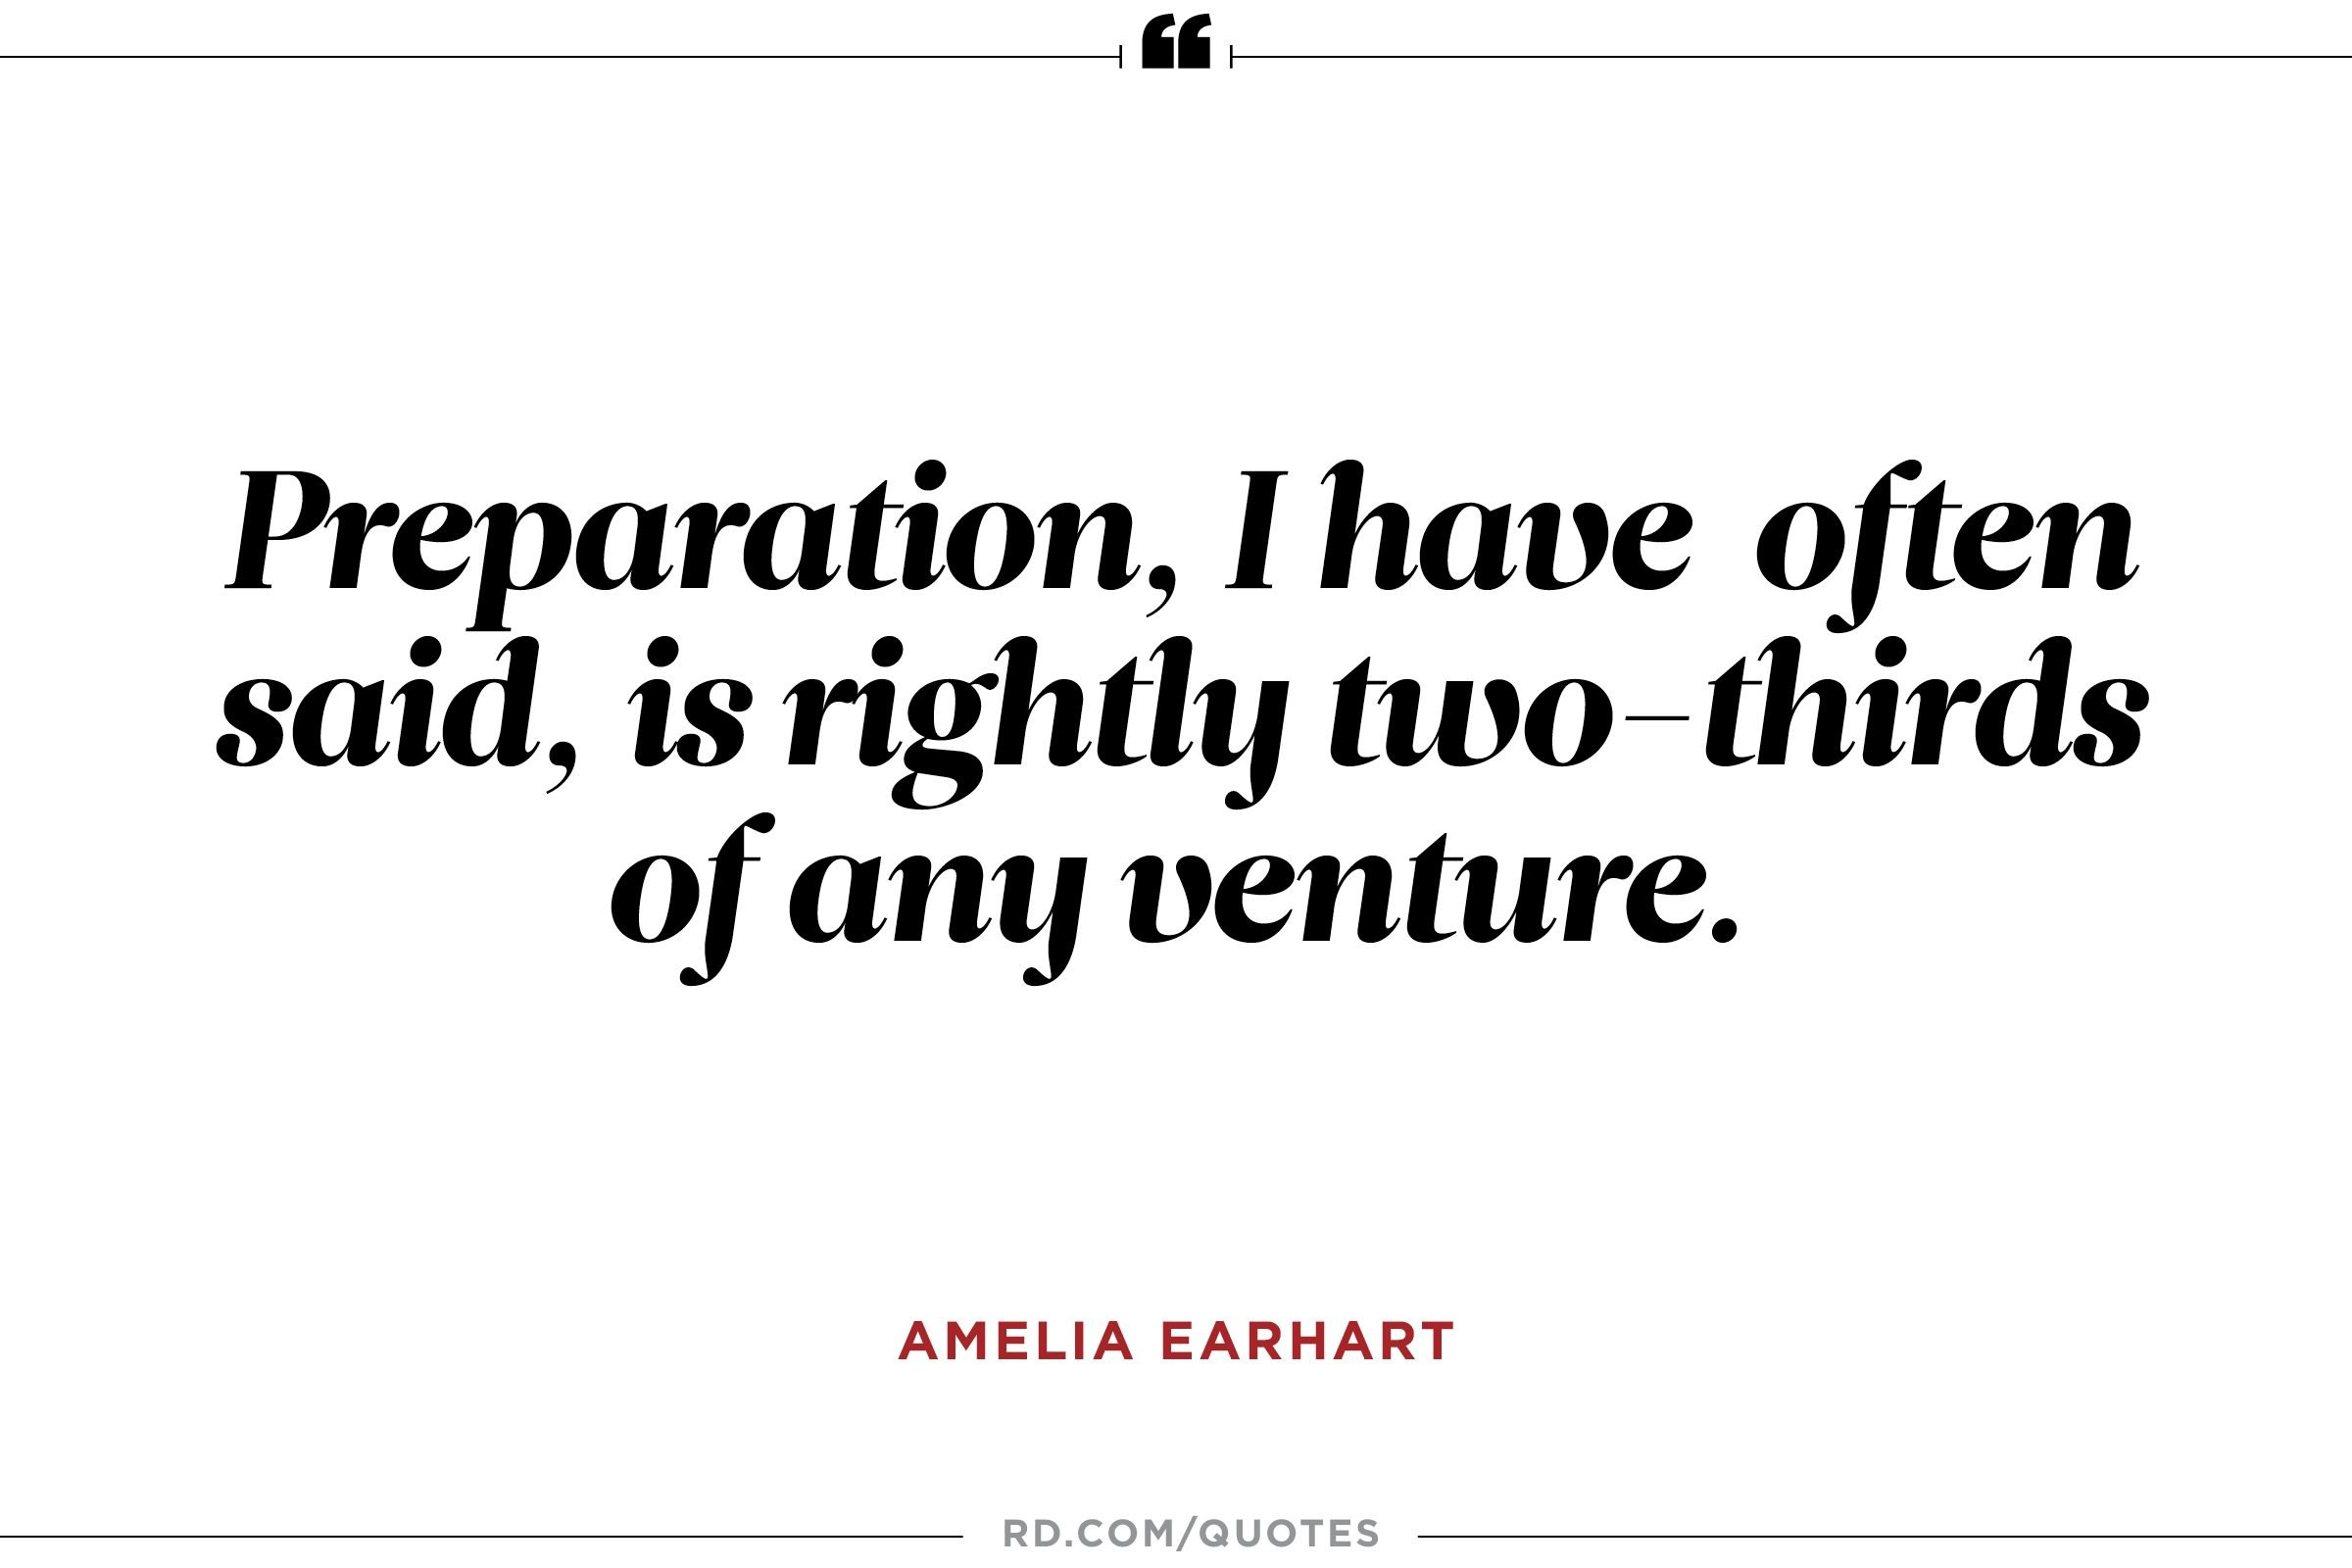 Uplifting Women's Quotes 10 Amelia Earhart Quotes To Propel You To Greatness  Reader's Digest